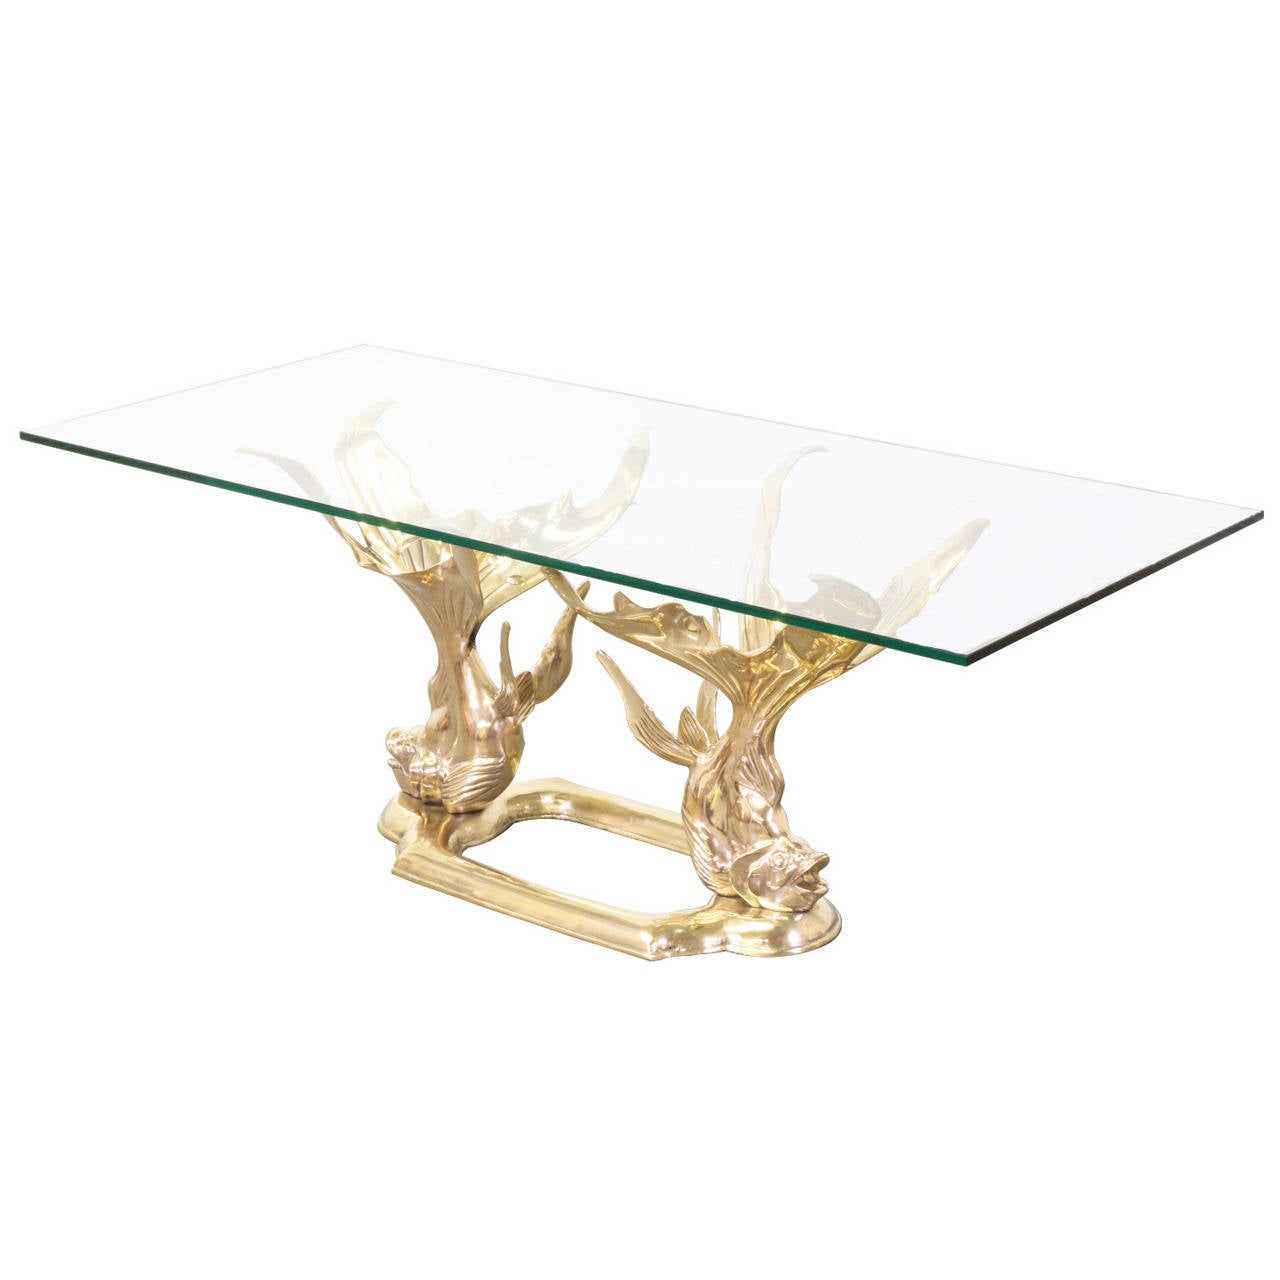 Messing Couchtisch Mit Glasplatte Vintage Brass Goldfish Coffee Table With Glass Top At 1stdibs